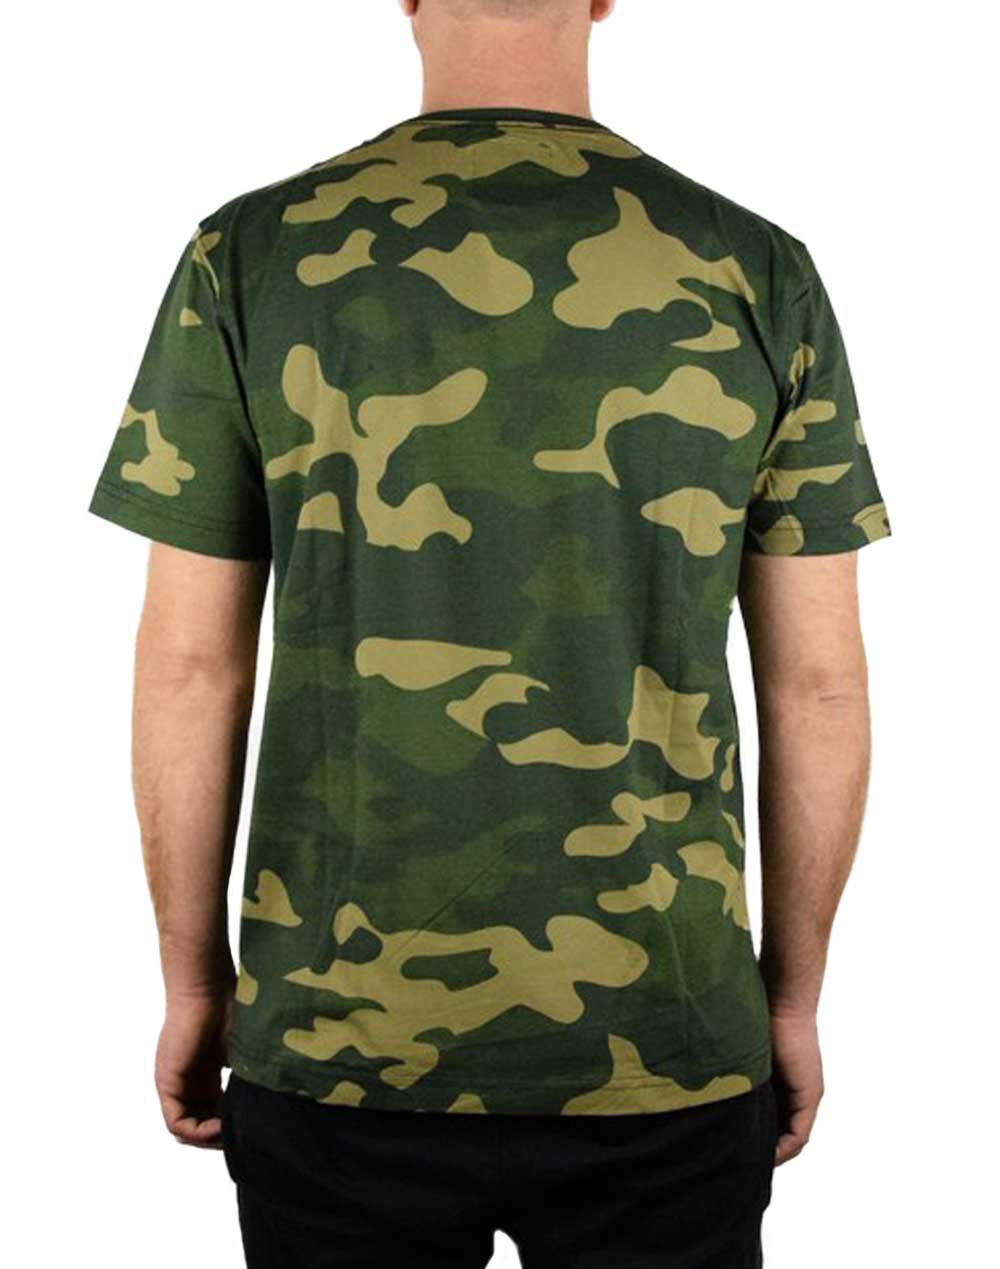 Cayer & Sons Worldwide Classic Tee (HD 17 AP 09) CAMO